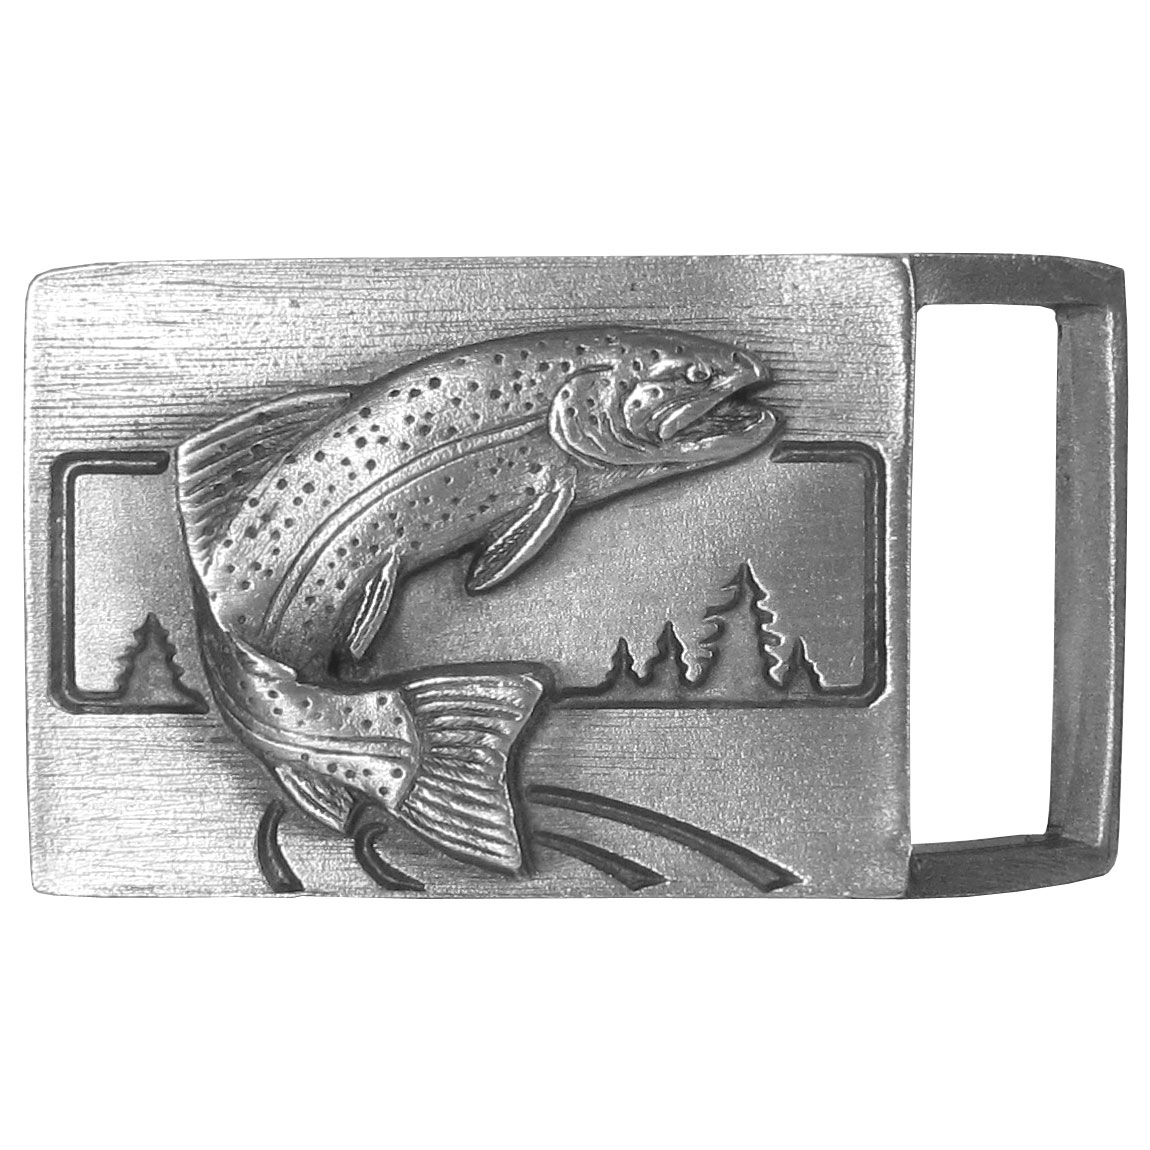 Trout Antiqued Belt Buckle - Finely sculpted and intricately designed belt buckle. Our unique designs often become collector's items.